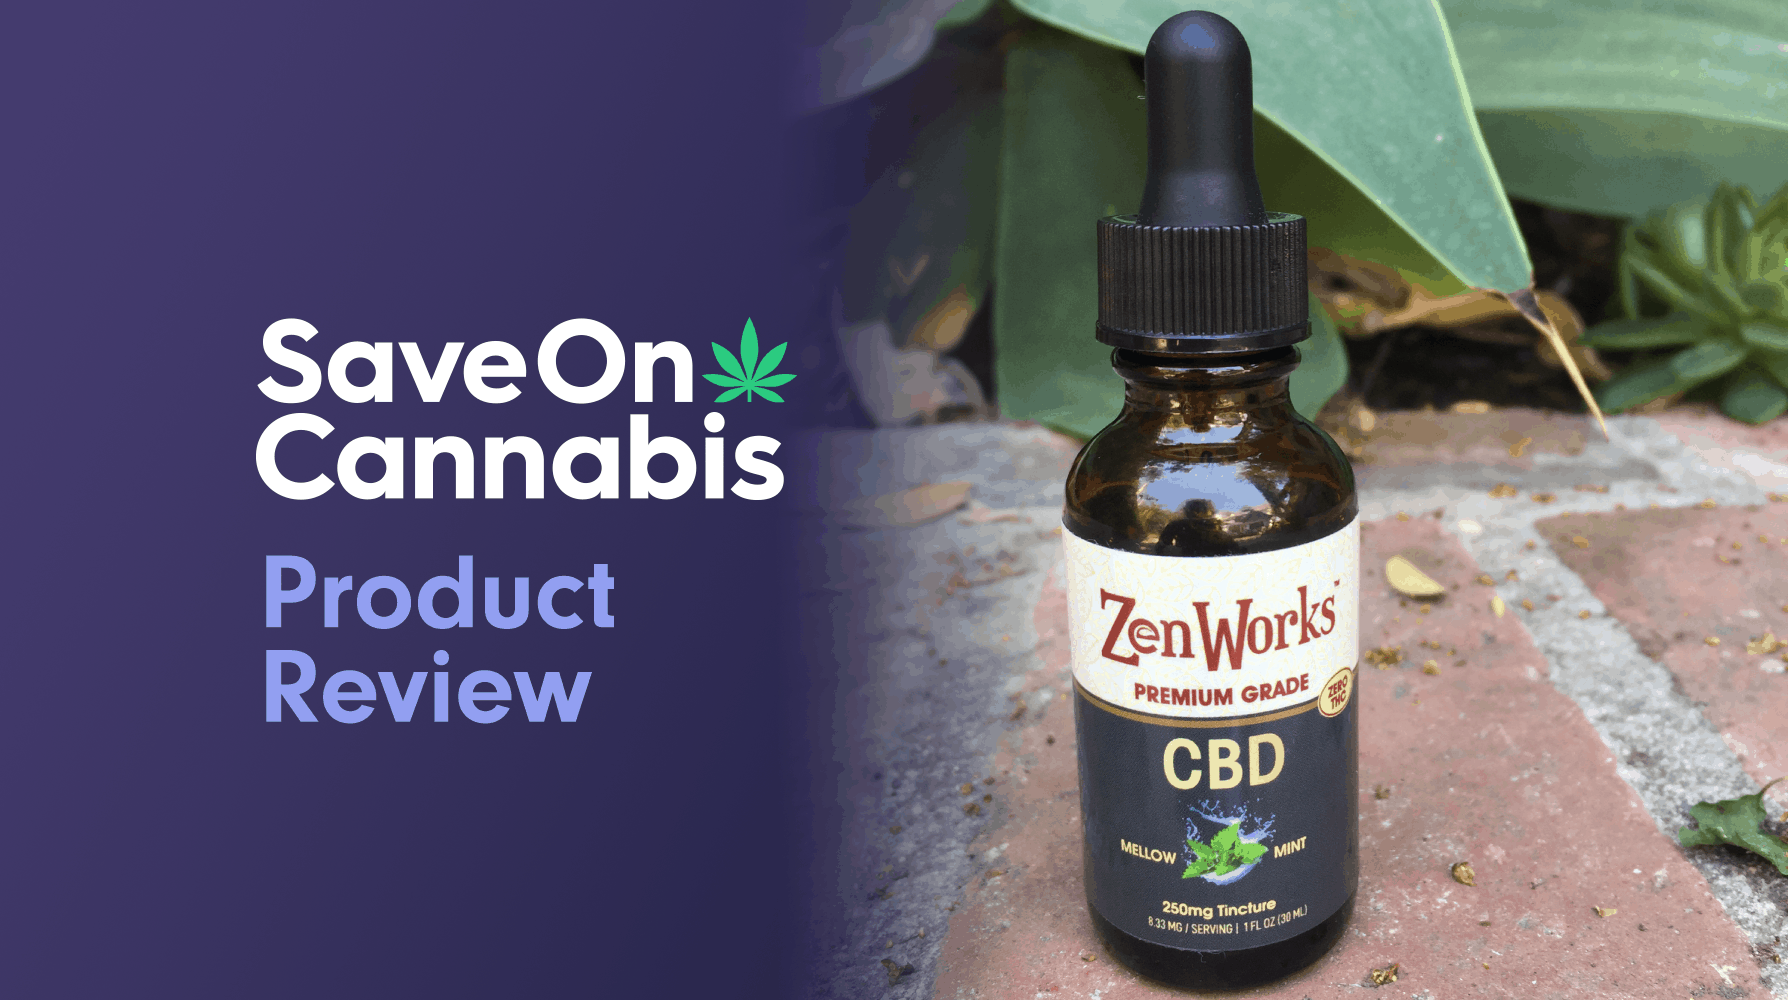 zenworks cbd oil tincture 250 mg mellow mint review save on cannabis website